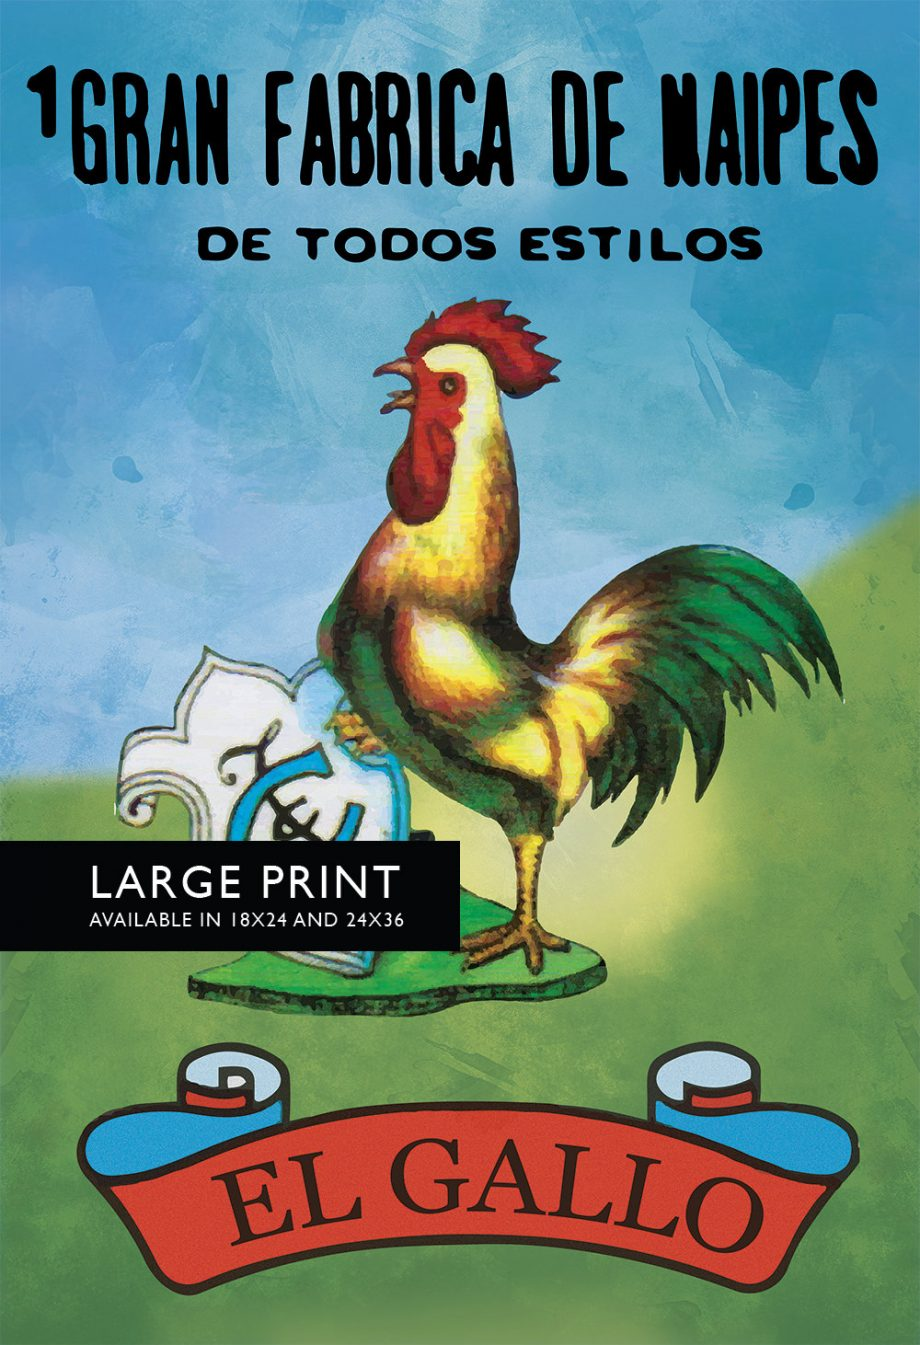 Loteria El Gallo Mexican Retro Illustration Art Print Vintage Giclee Poster Wall Decor - Large Giclee on Cotton Canvas and Satin Photo Paper